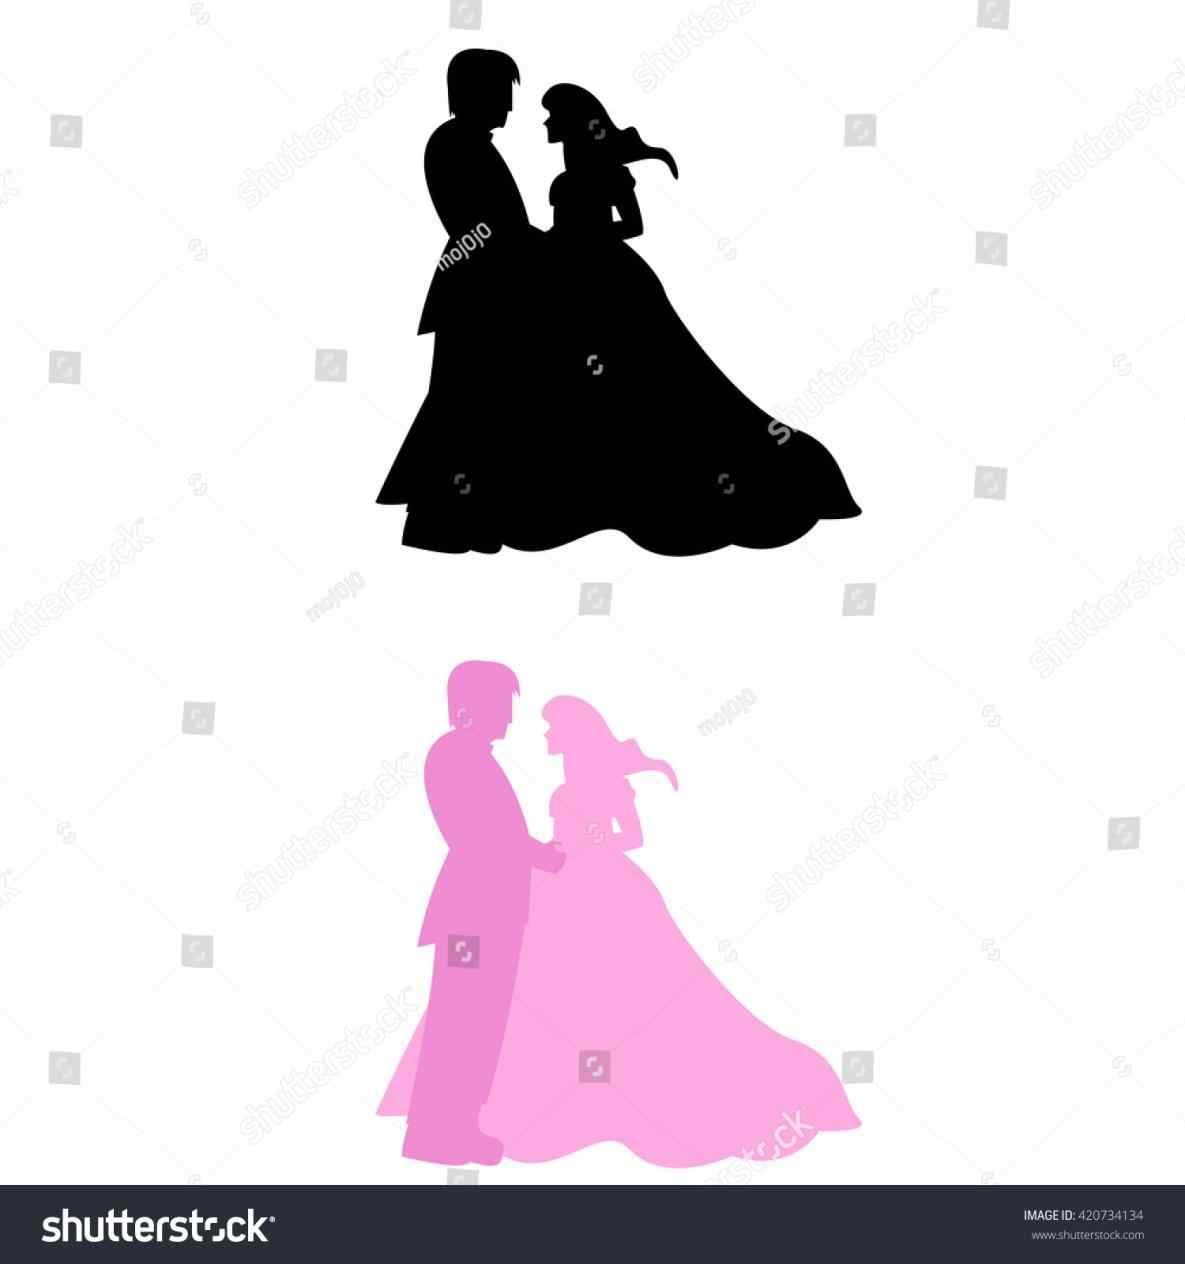 1185x1264 Bride And Groom Silhouette Wedding Clipart